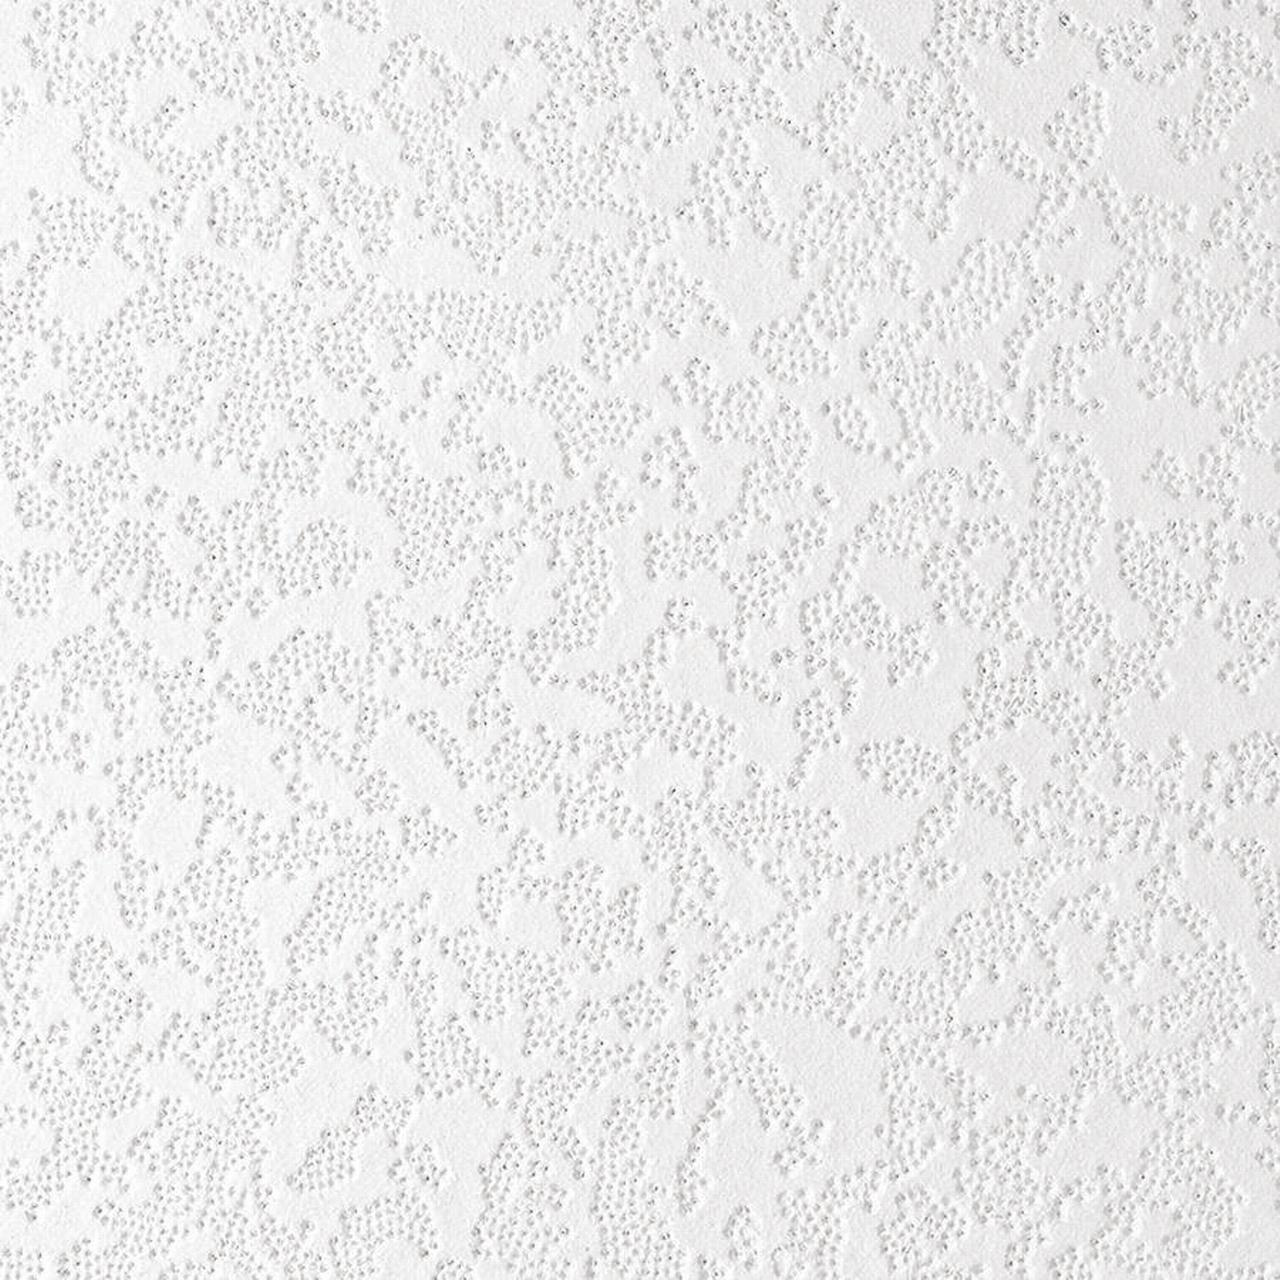 USG Advantage Lace 4260 Tongue and Groove Ceiling Tile, 12 in L x 12 in W x 1/2 in T, Wood Fiber